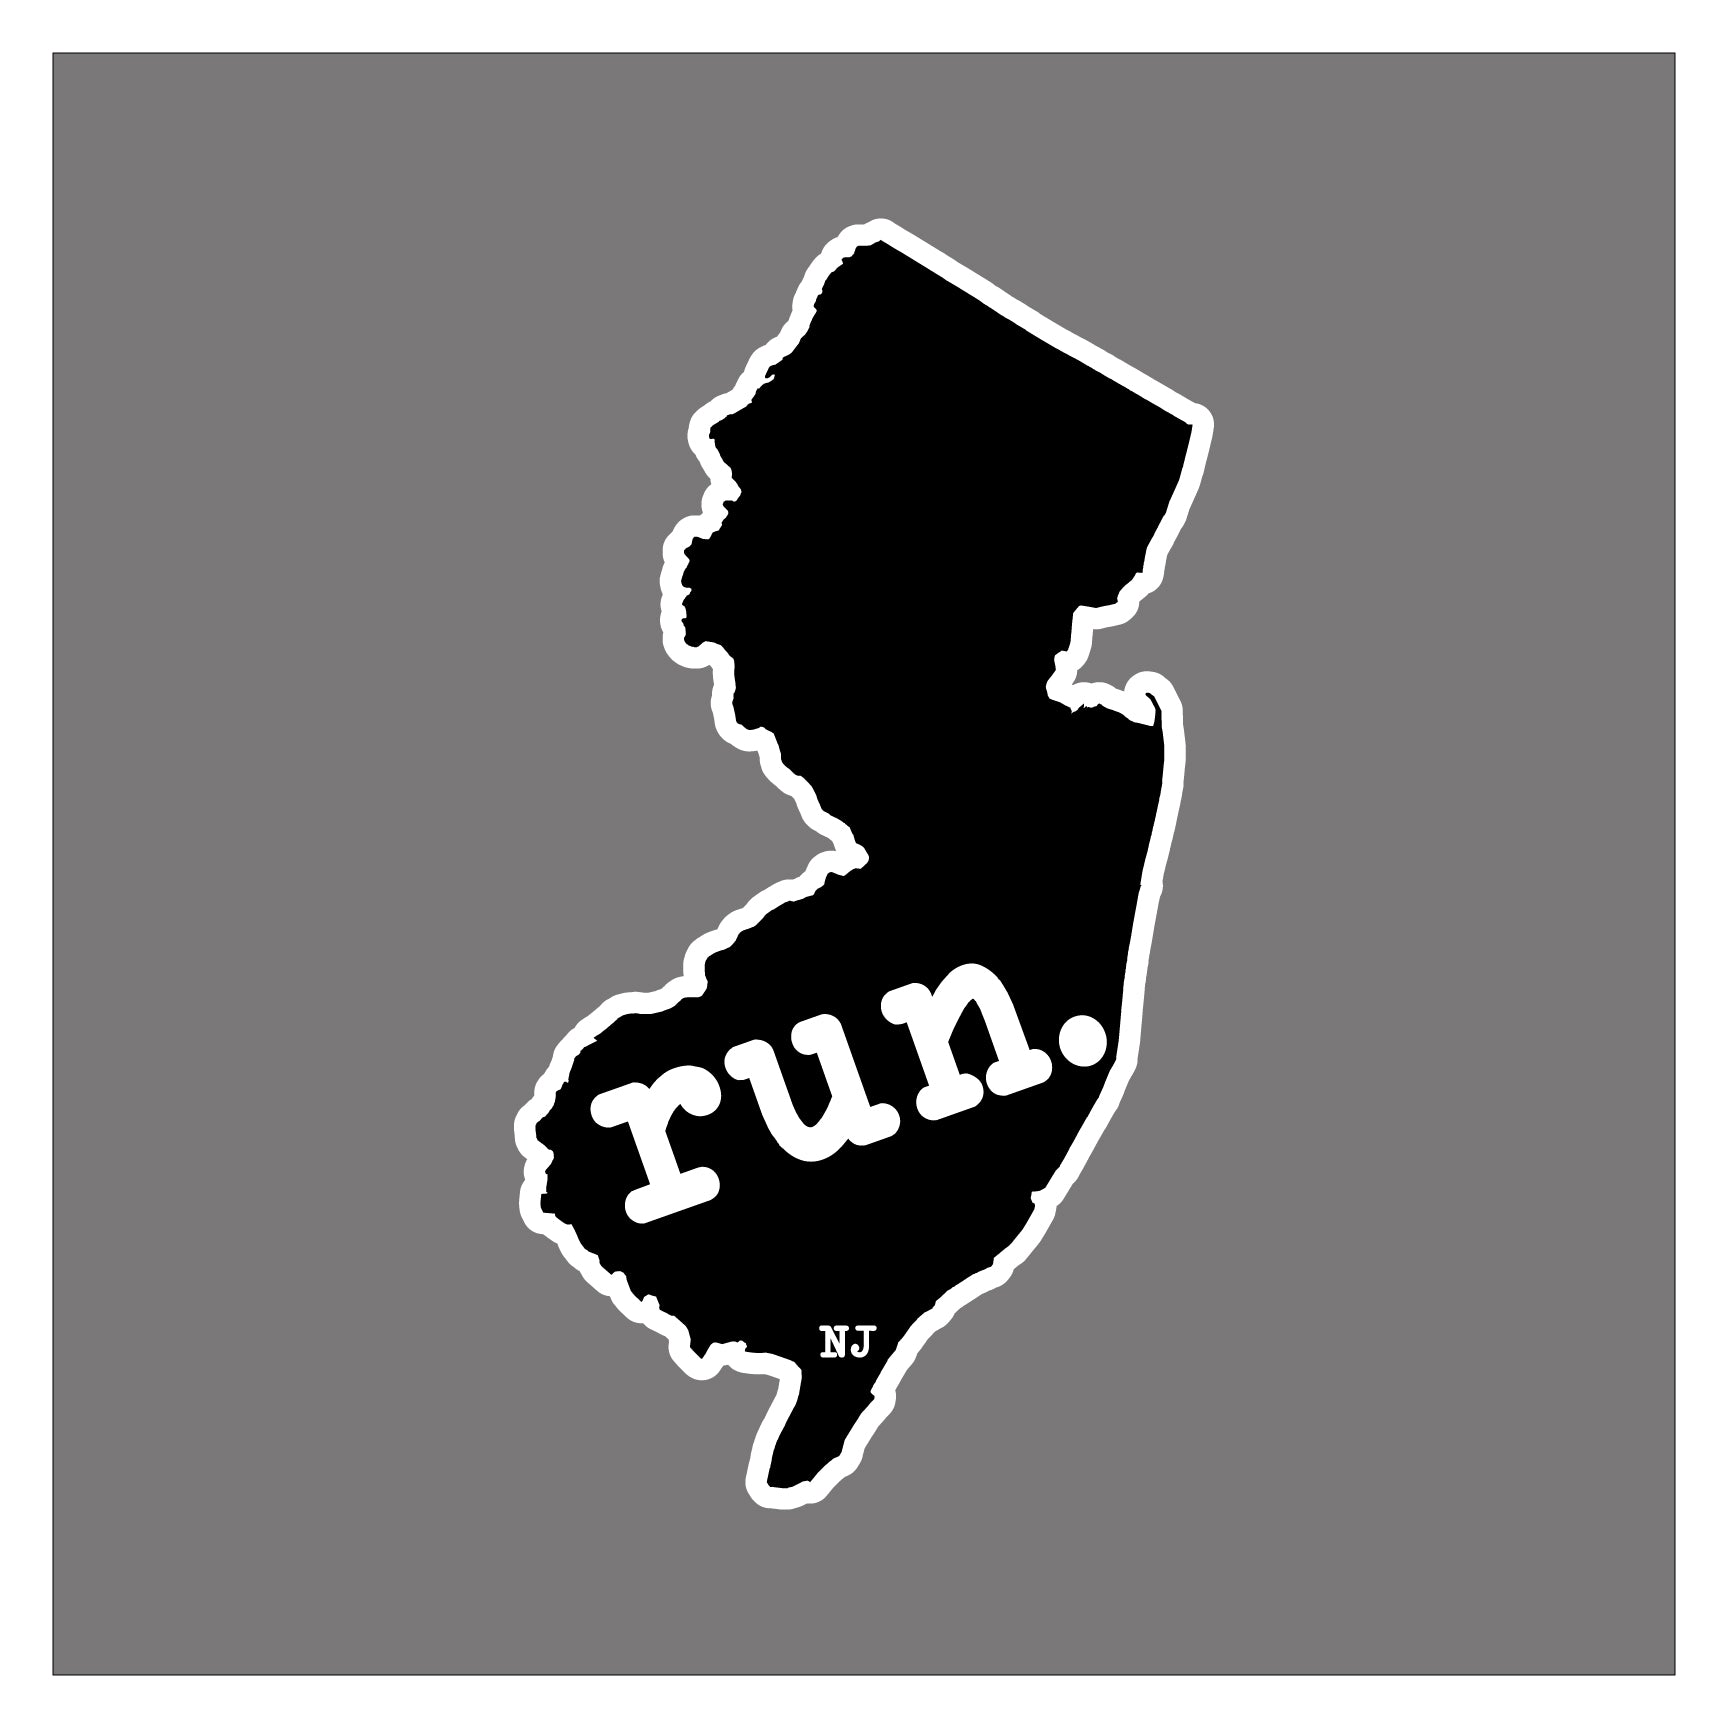 Run New Jersey State Outline Magnet (Black)